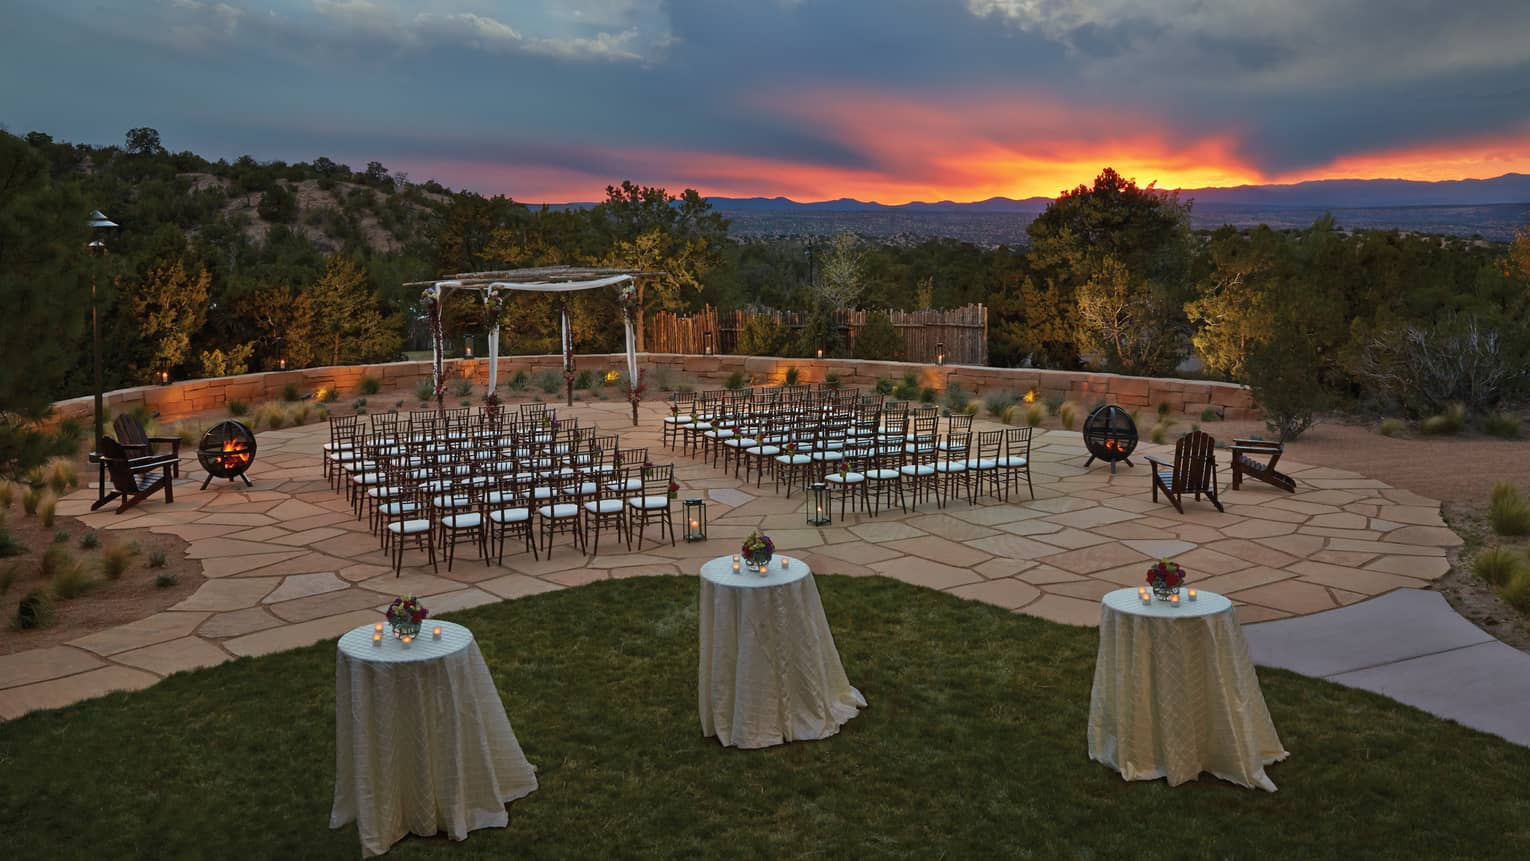 Rows of chairs on tiled surface facing wooden altar, cocktail tables overlooking trees and foothills at dusk